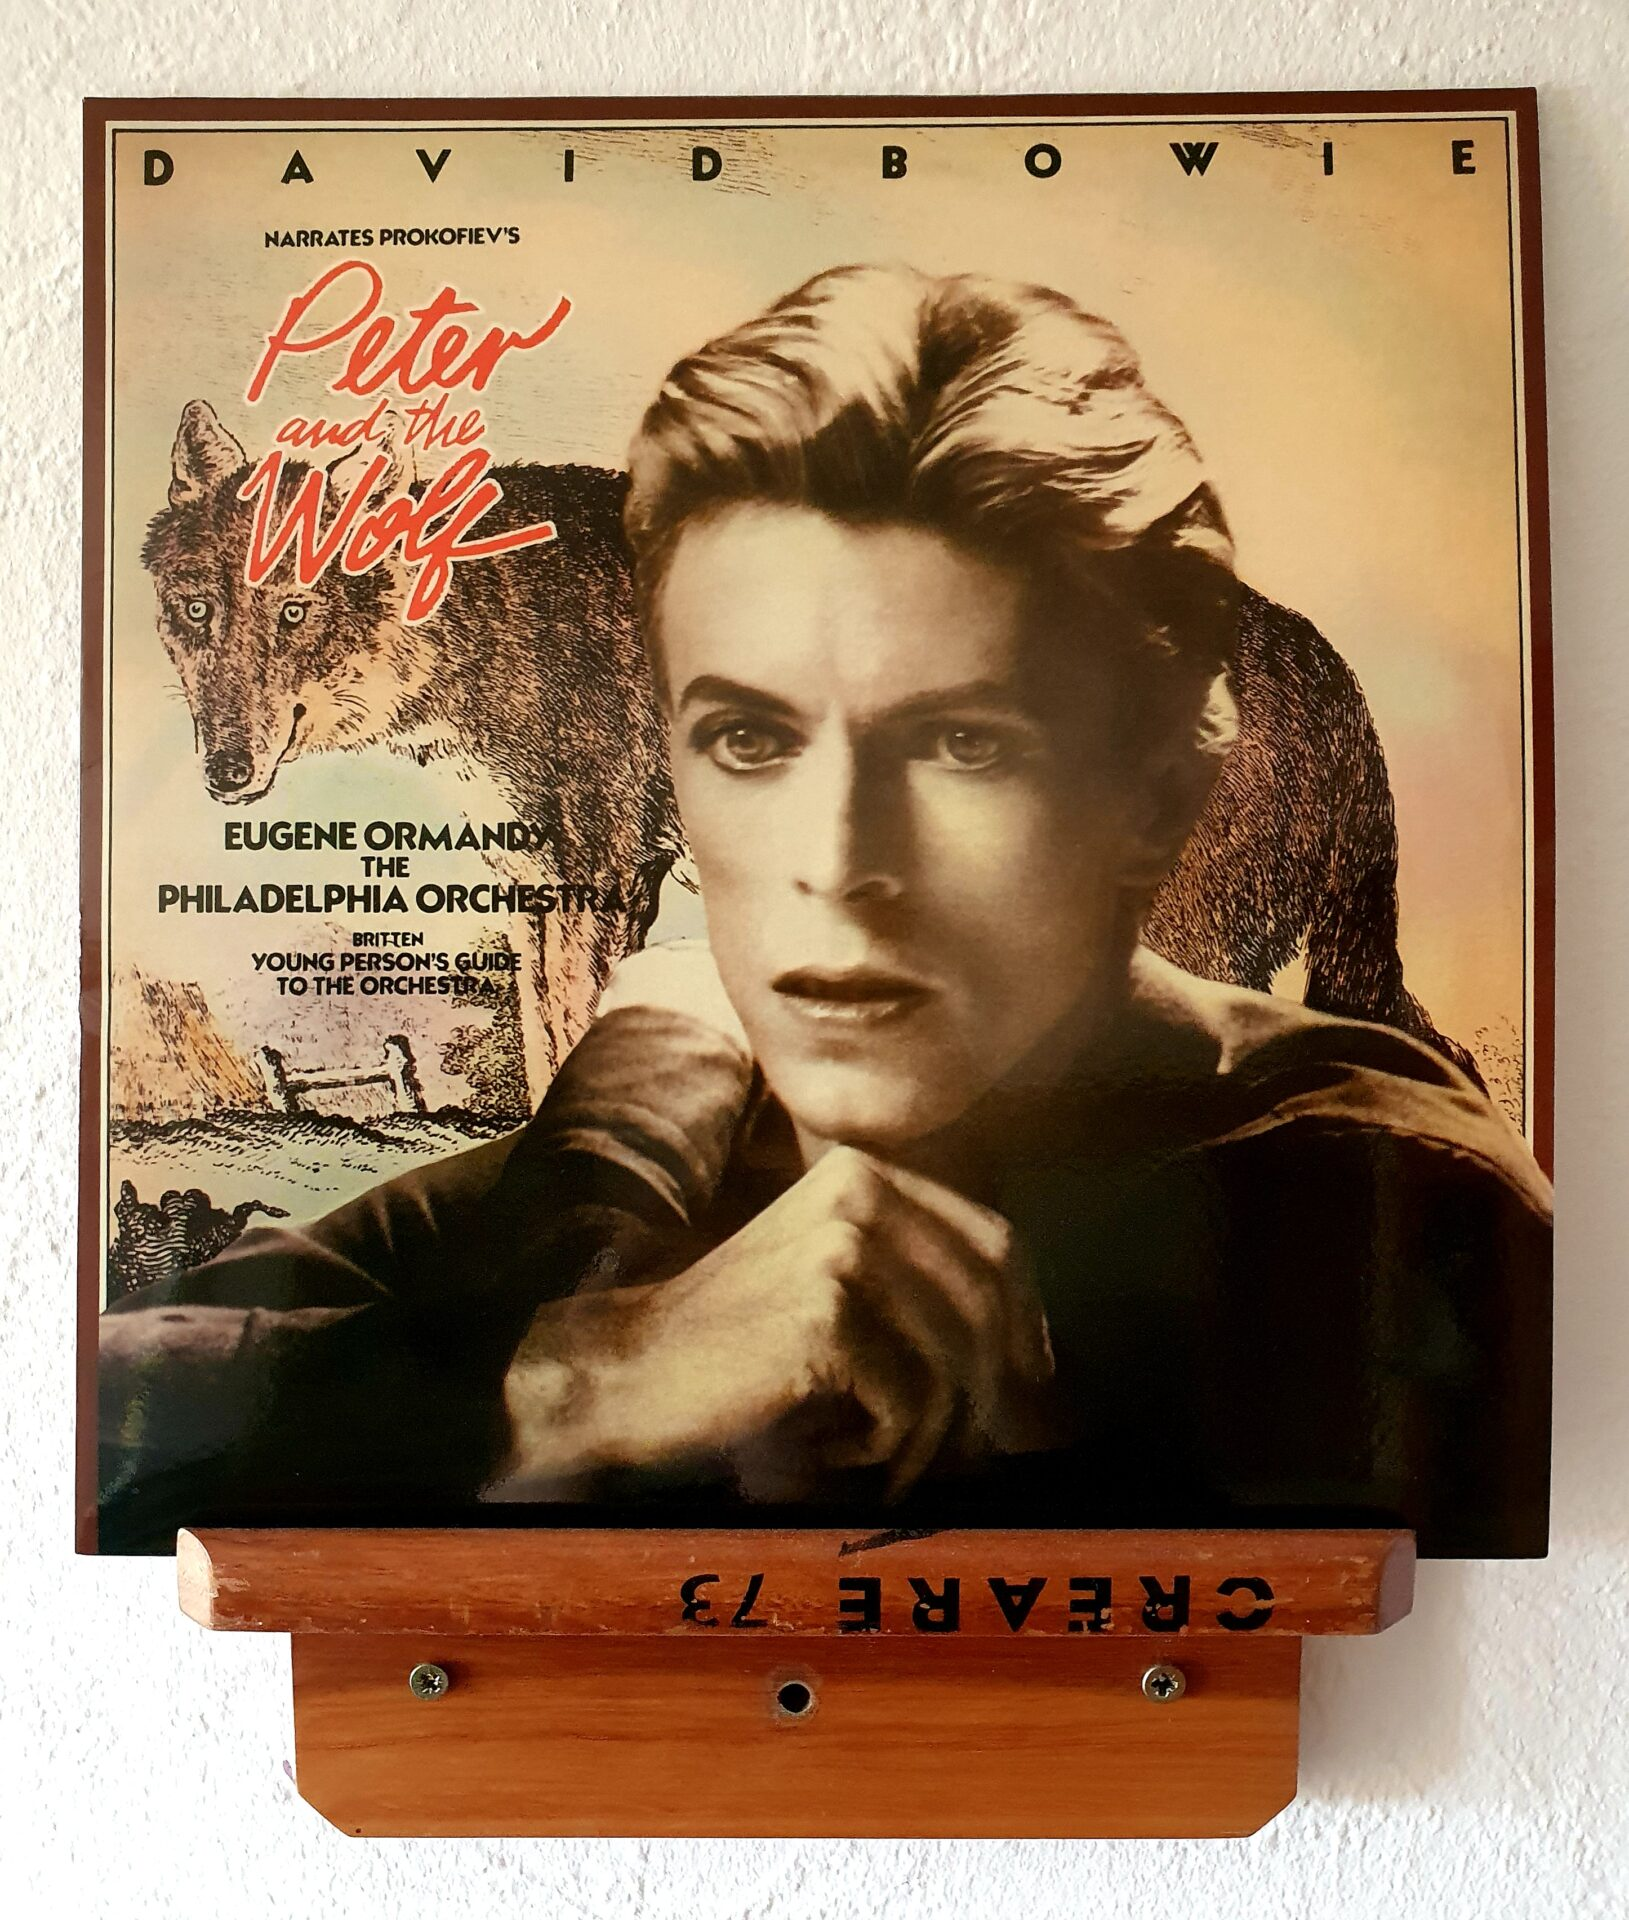 David Bowie narrates Prokofiev's Peter and the Wolf